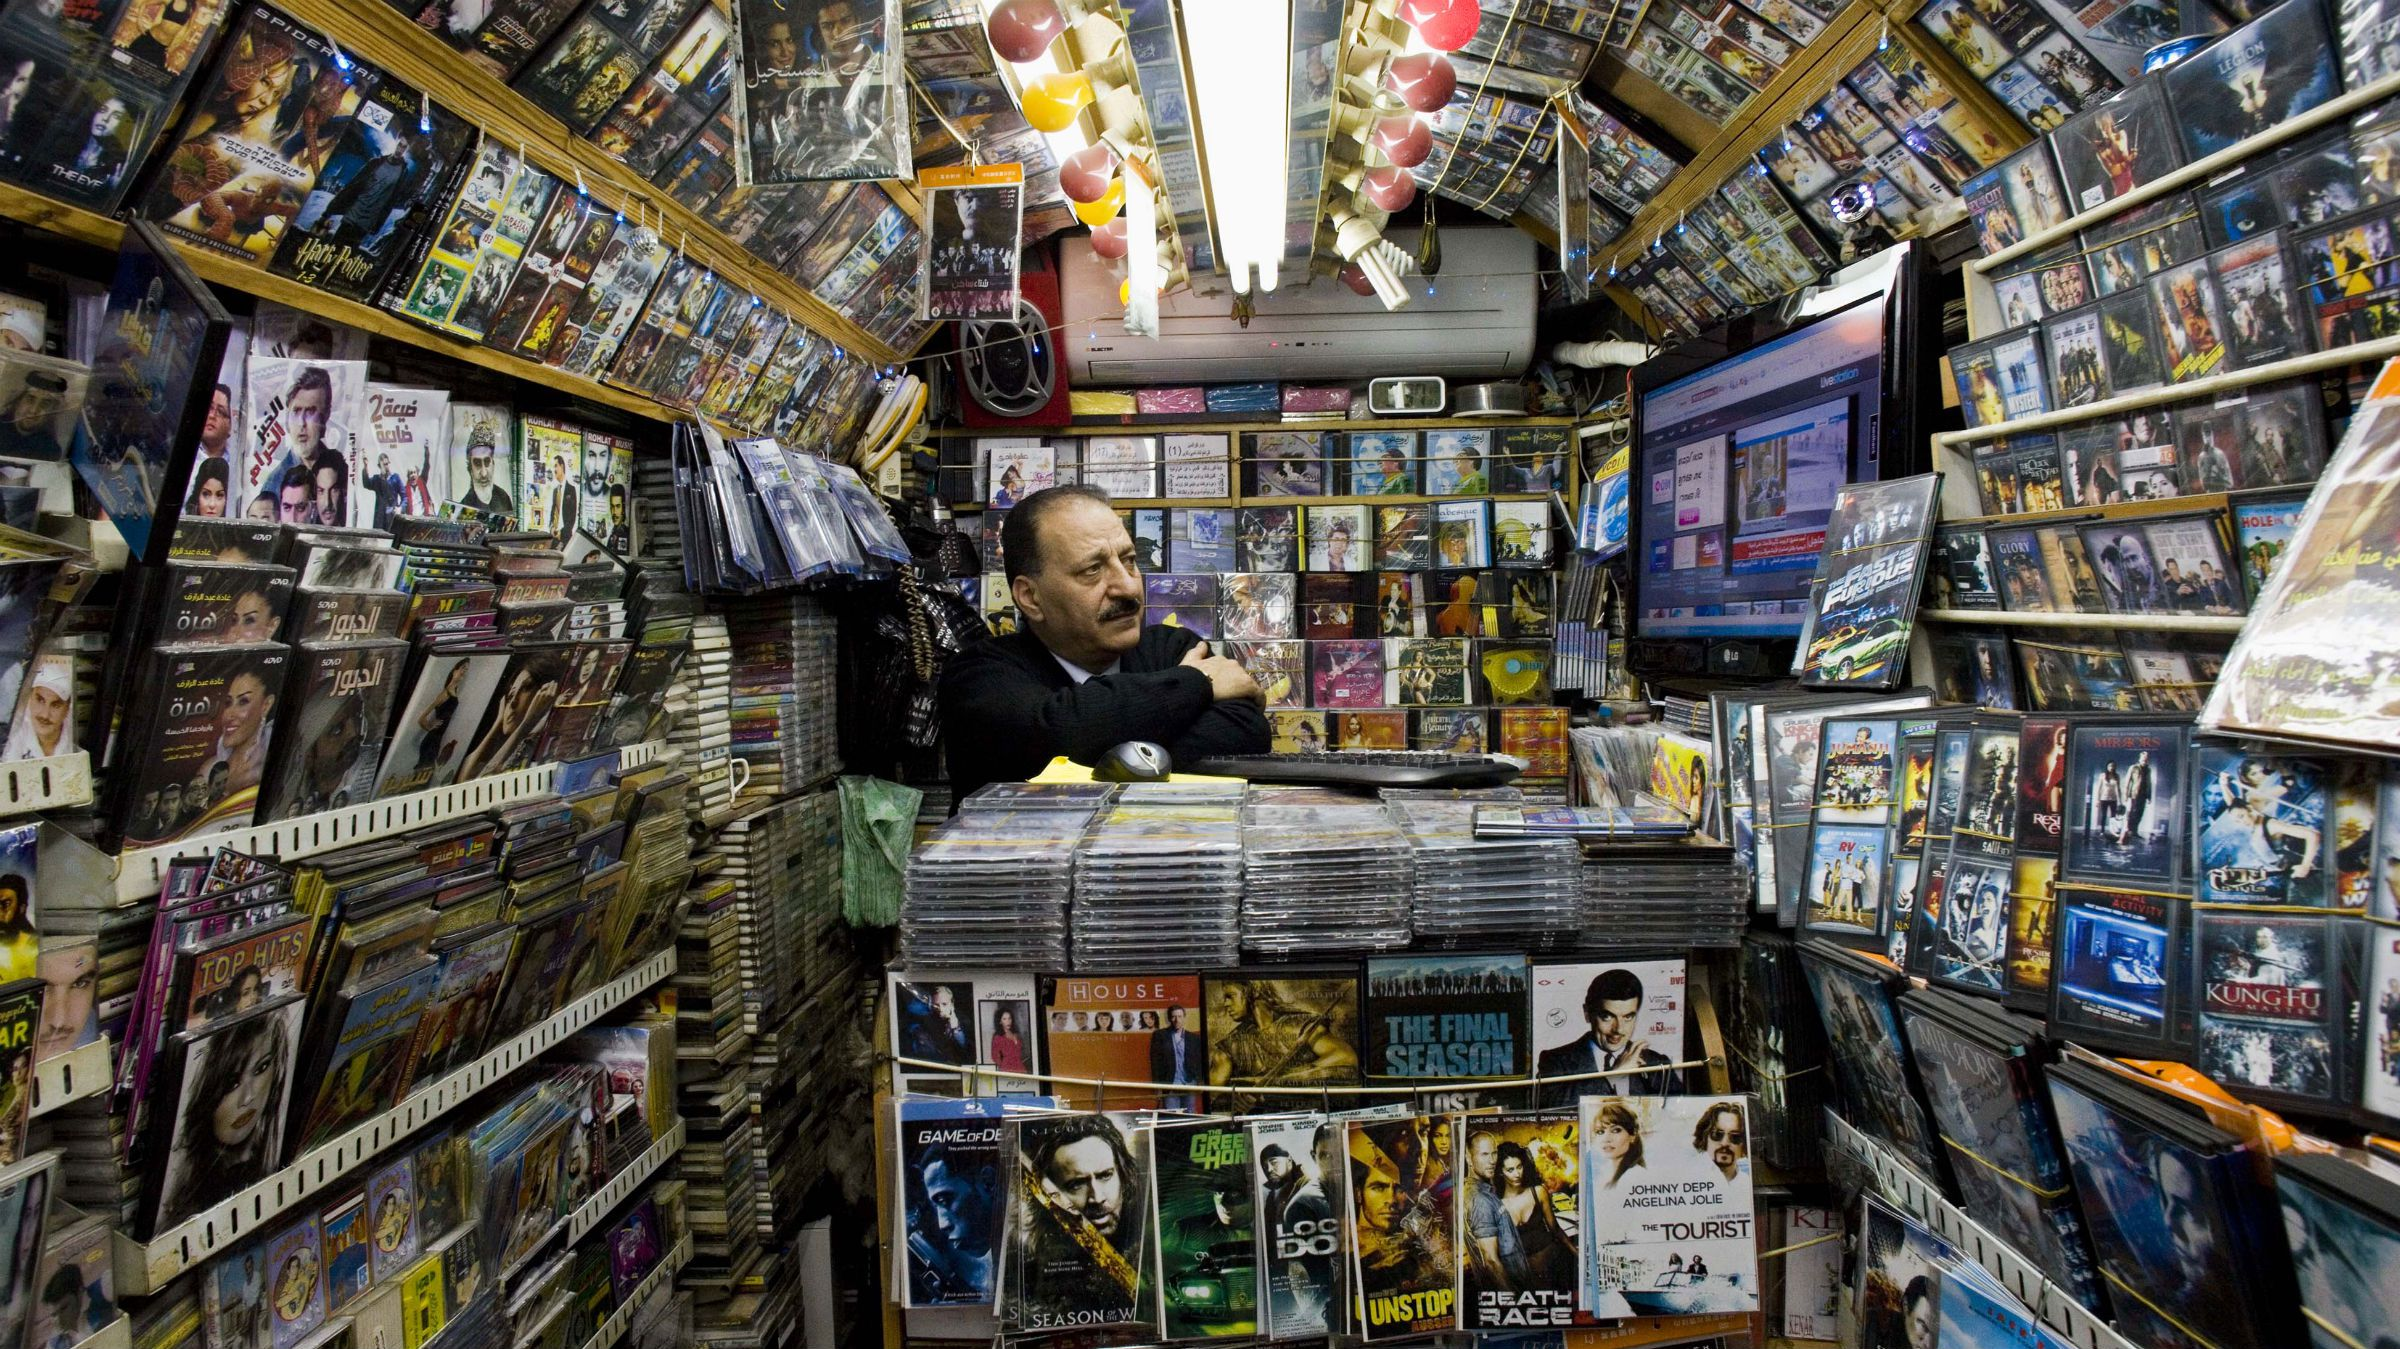 A Palestinian watches news from Egypt on television inside his shop in Jerusalem's Old City, Thursday, Feb. 3, 2011.